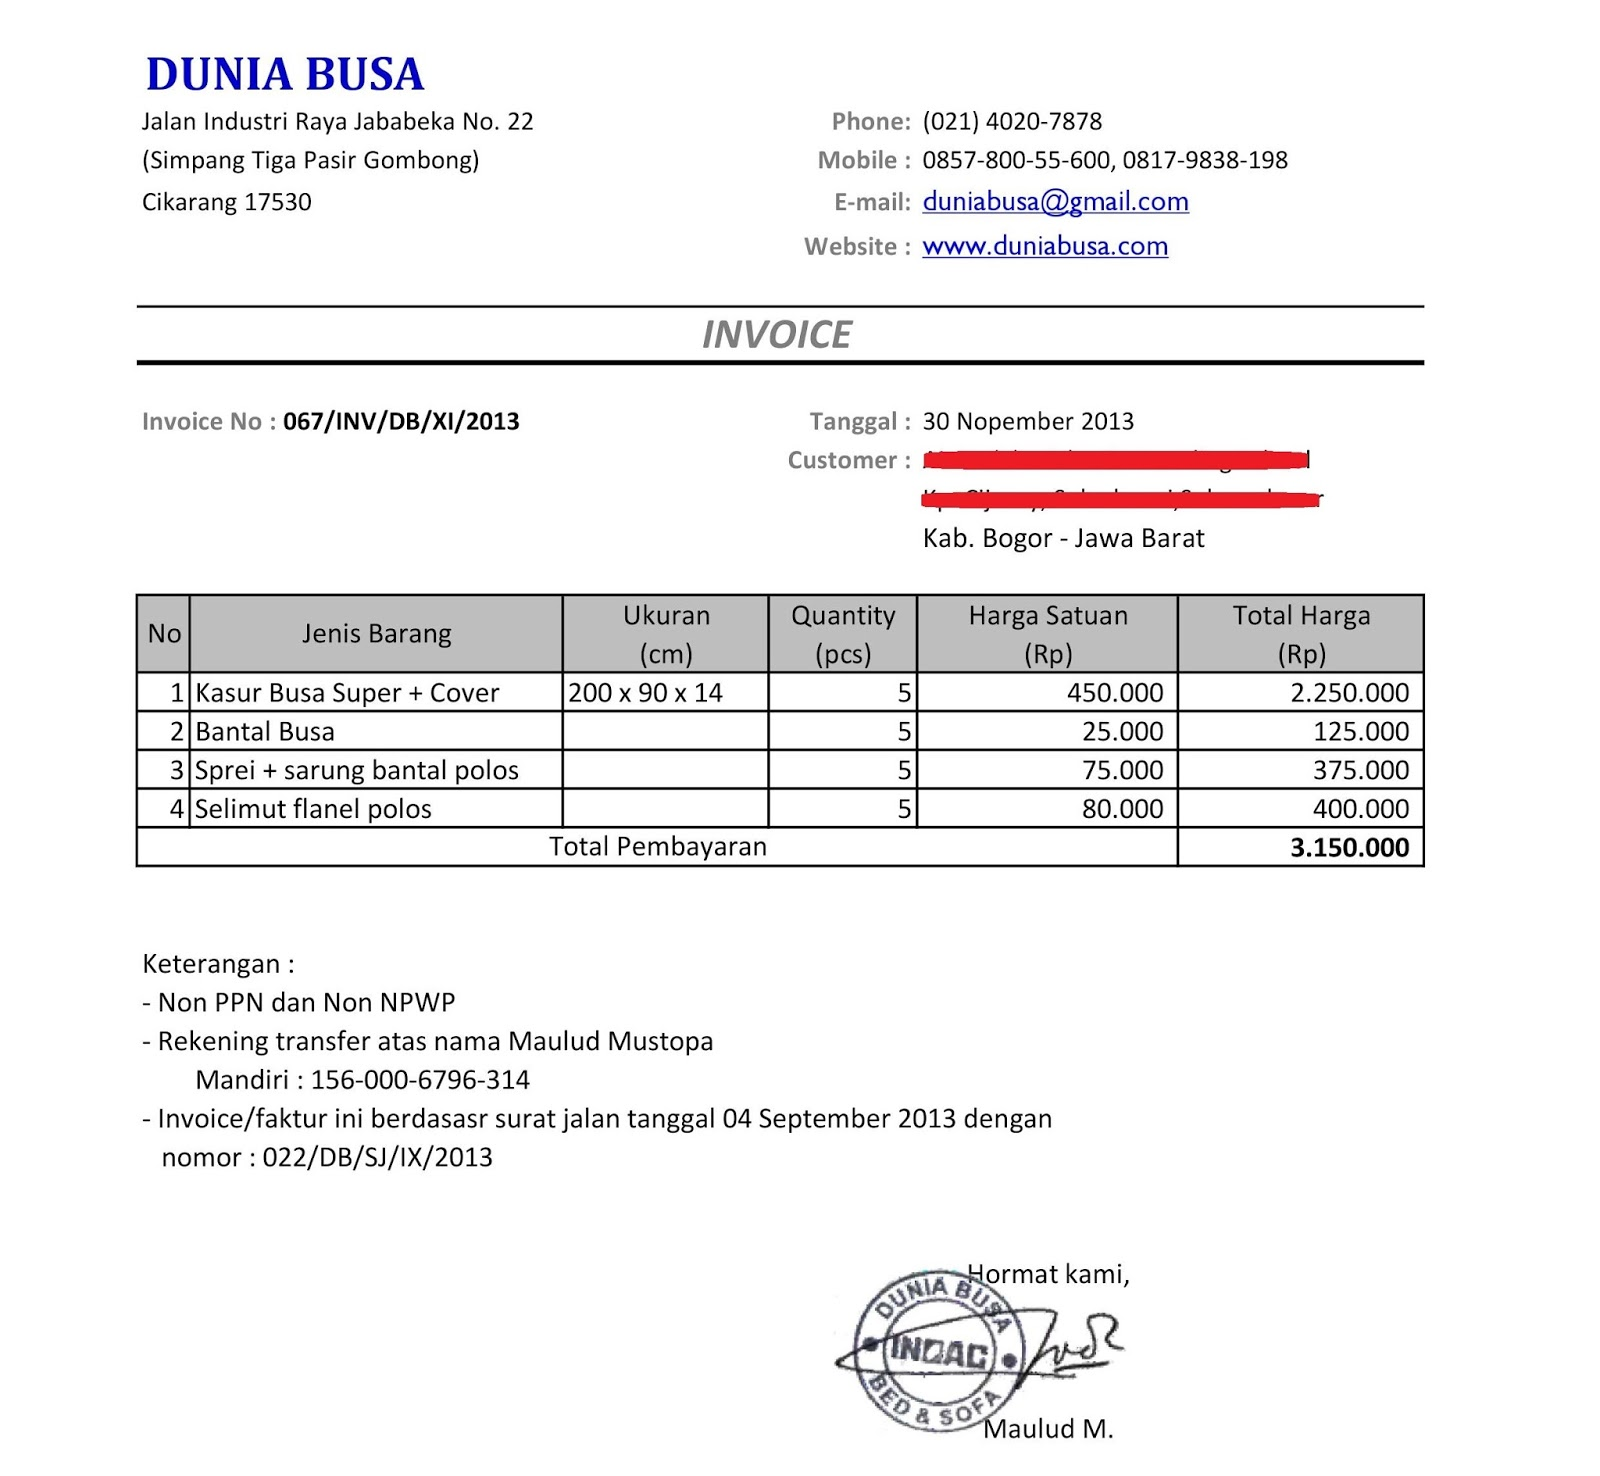 Ultrablogus  Remarkable Free Invoice Online  Create Invoice Online  Invoice Template  With Entrancing Contoh Format Invoice Atau Surat Tagihan  Brankas Arsip  Free Invoice Online With Awesome Canada Custom Invoice Also Freelance Writing Invoice In Addition Ariba Invoicing And Wawf Invoice As Well As Microsoft Template Invoice Additionally  Toyota Corolla Invoice Price From Sklepco With Ultrablogus  Entrancing Free Invoice Online  Create Invoice Online  Invoice Template  With Awesome Contoh Format Invoice Atau Surat Tagihan  Brankas Arsip  Free Invoice Online And Remarkable Canada Custom Invoice Also Freelance Writing Invoice In Addition Ariba Invoicing From Sklepco